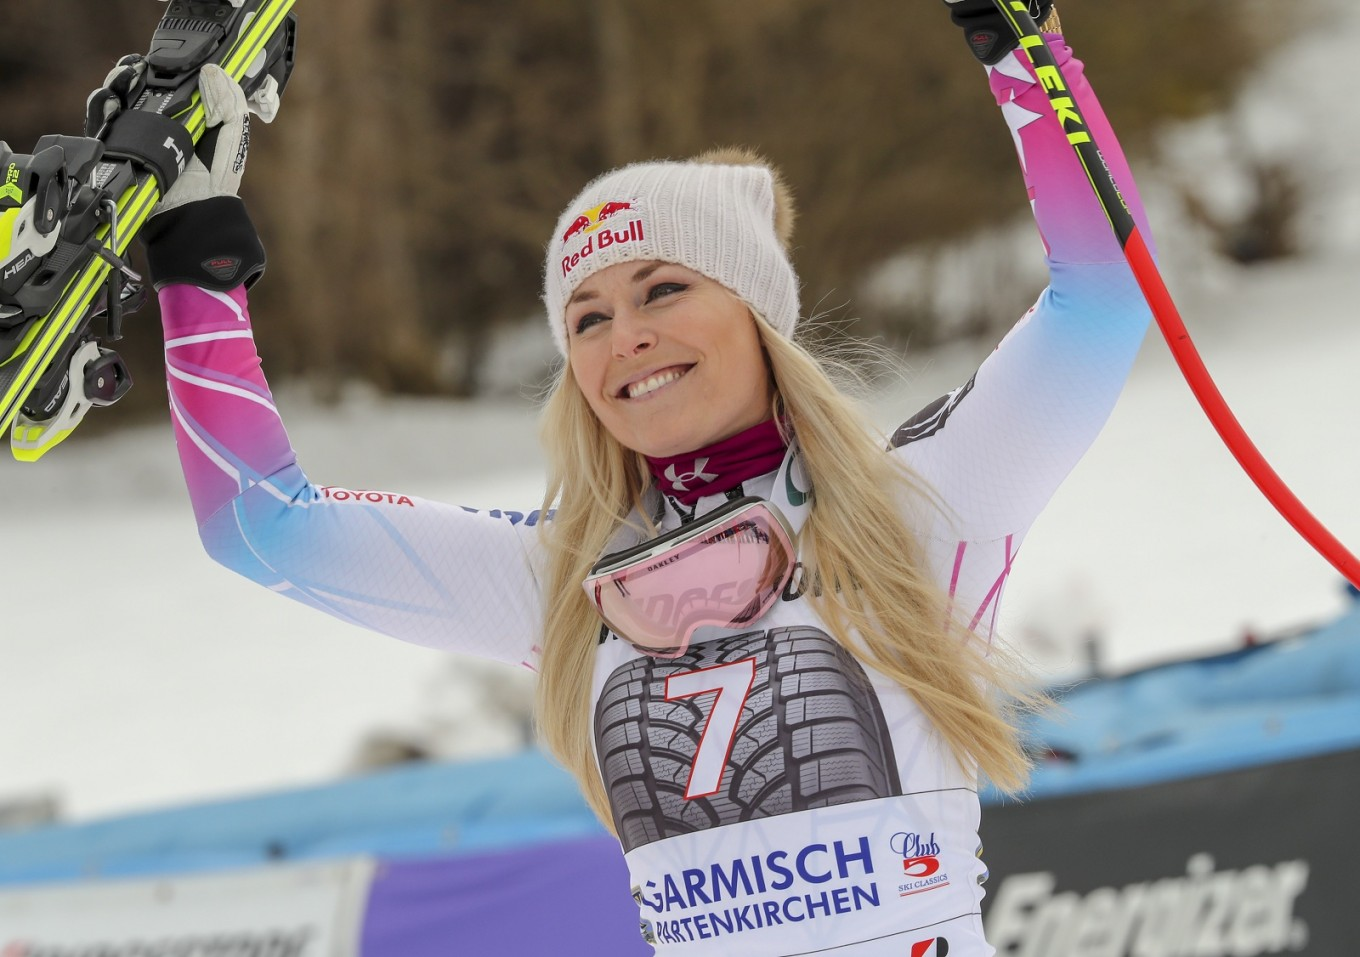 Ski star Vonn puts out Twitter call for Valentine's date